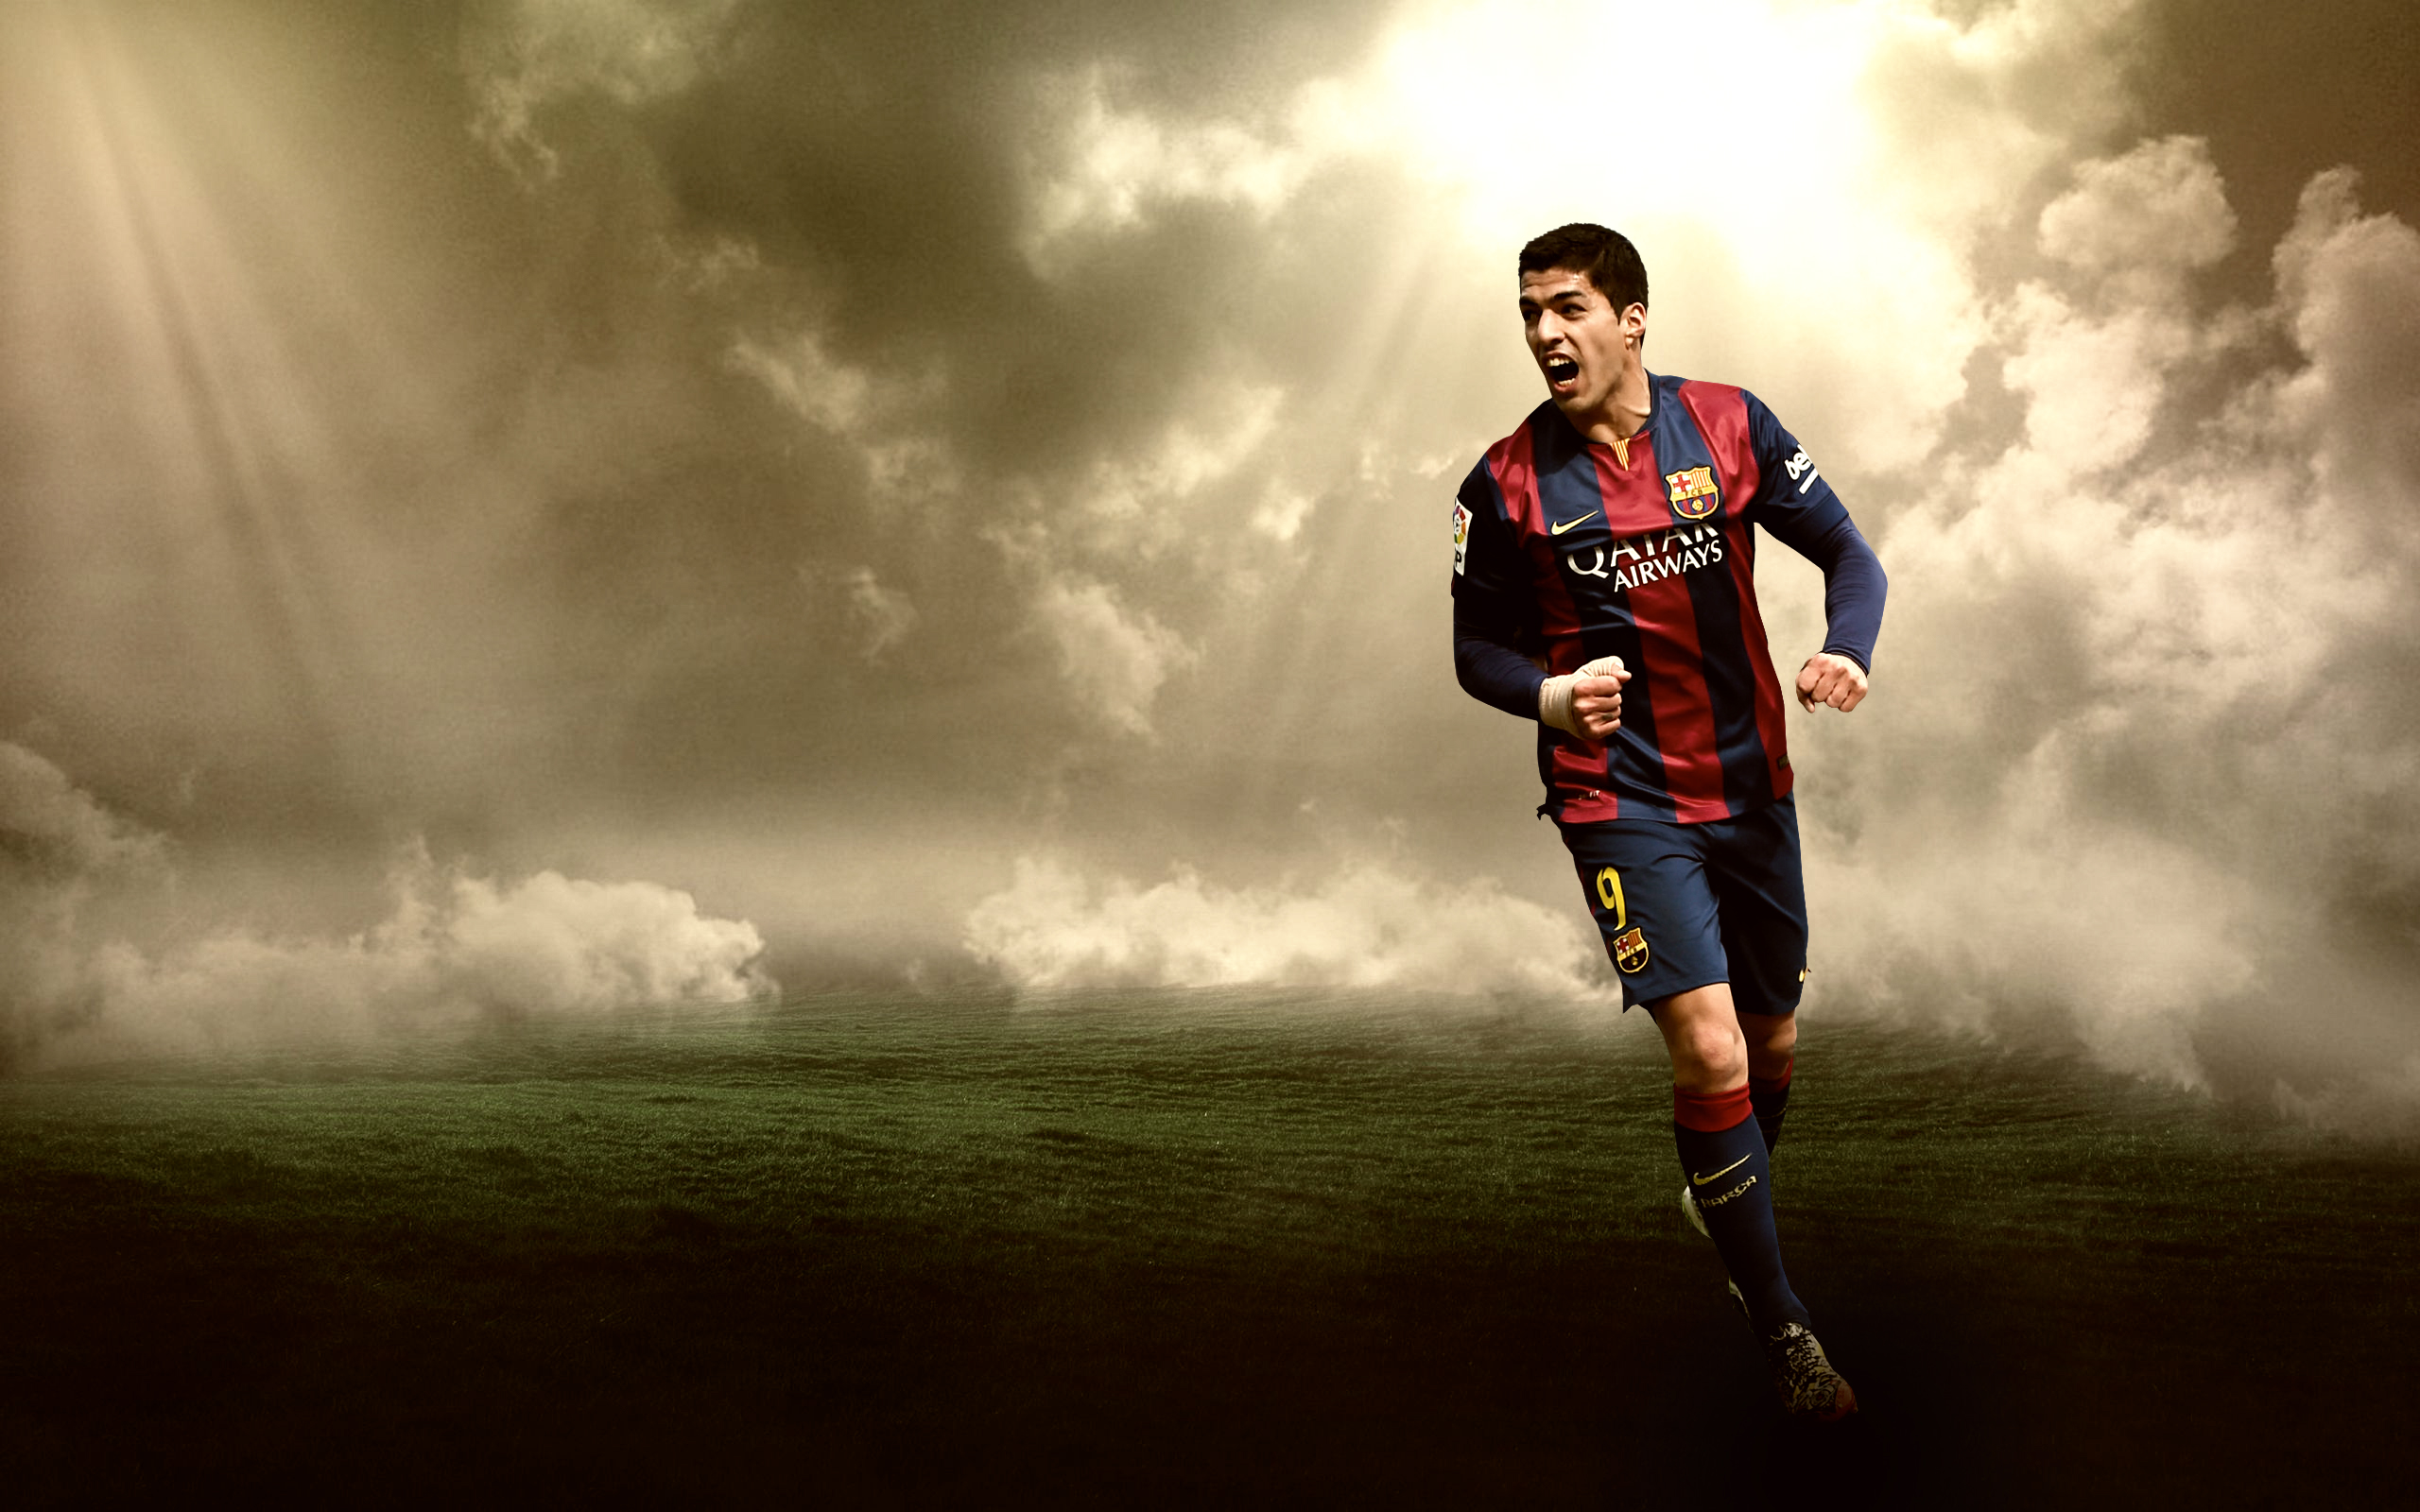 free luis suarez moments football soccer player hd background mobile desktop download wallpapers